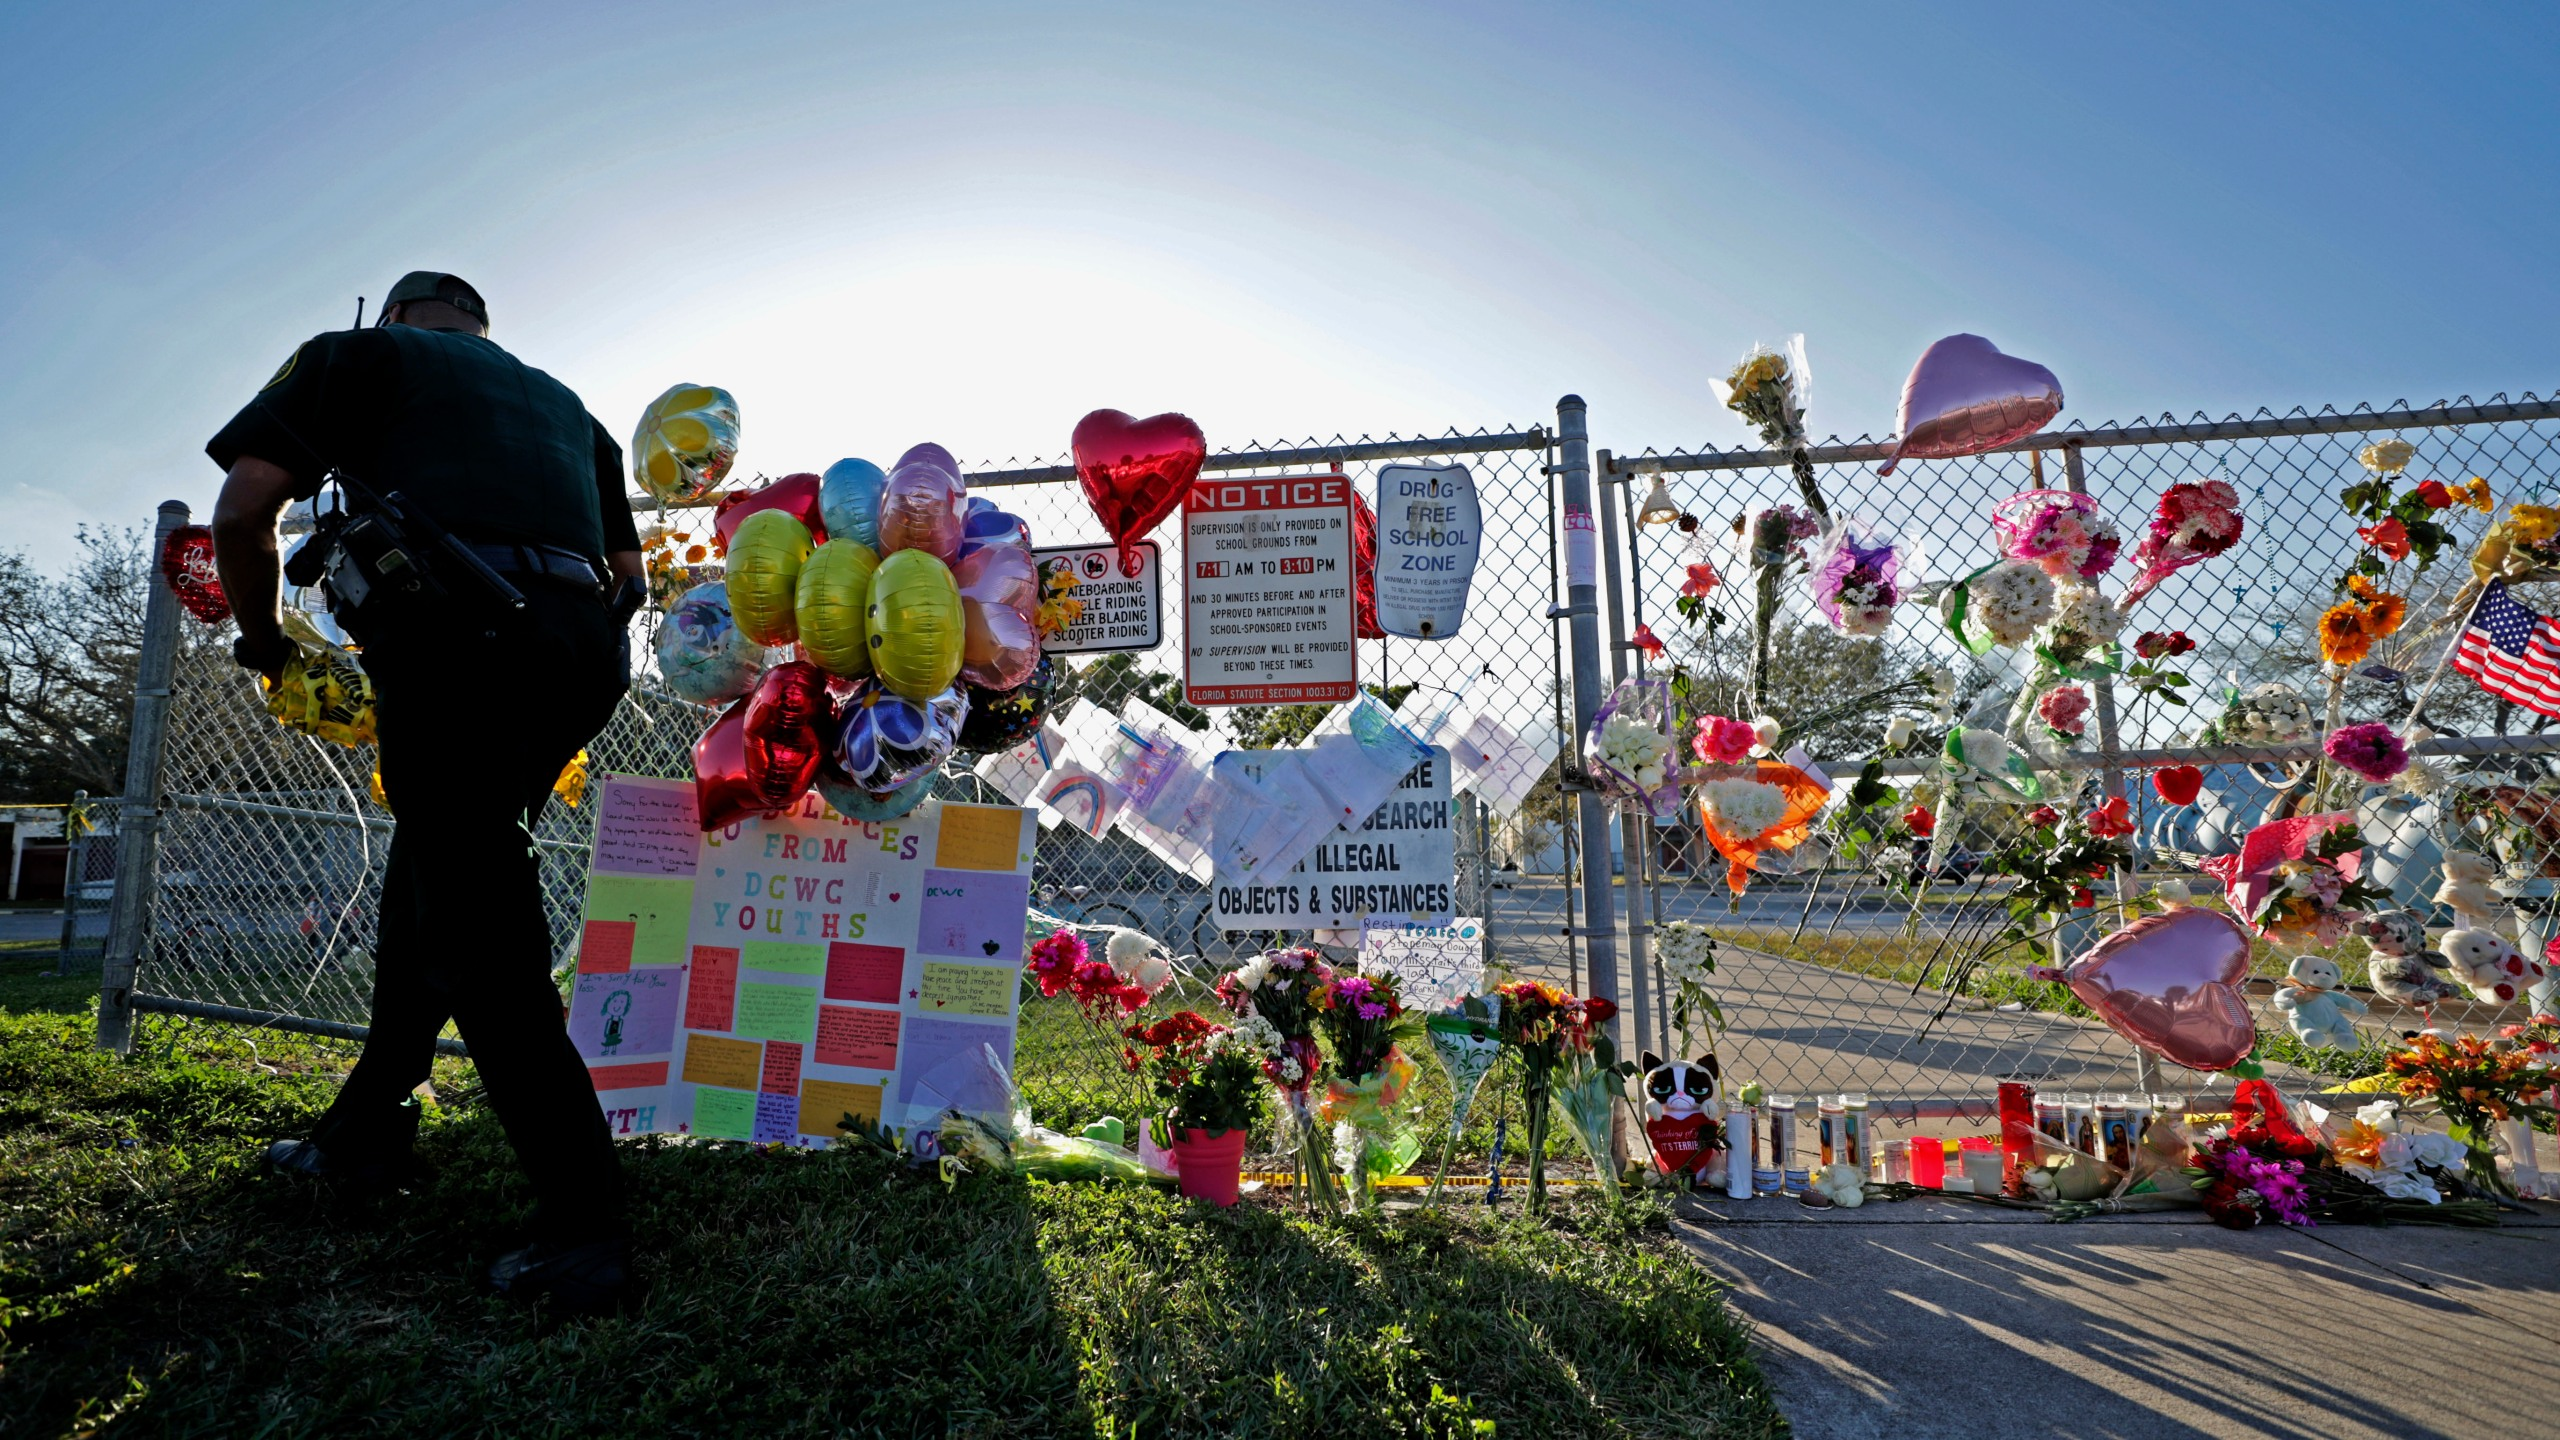 School_Shooting_Florida_59432-159532.jpg61685262